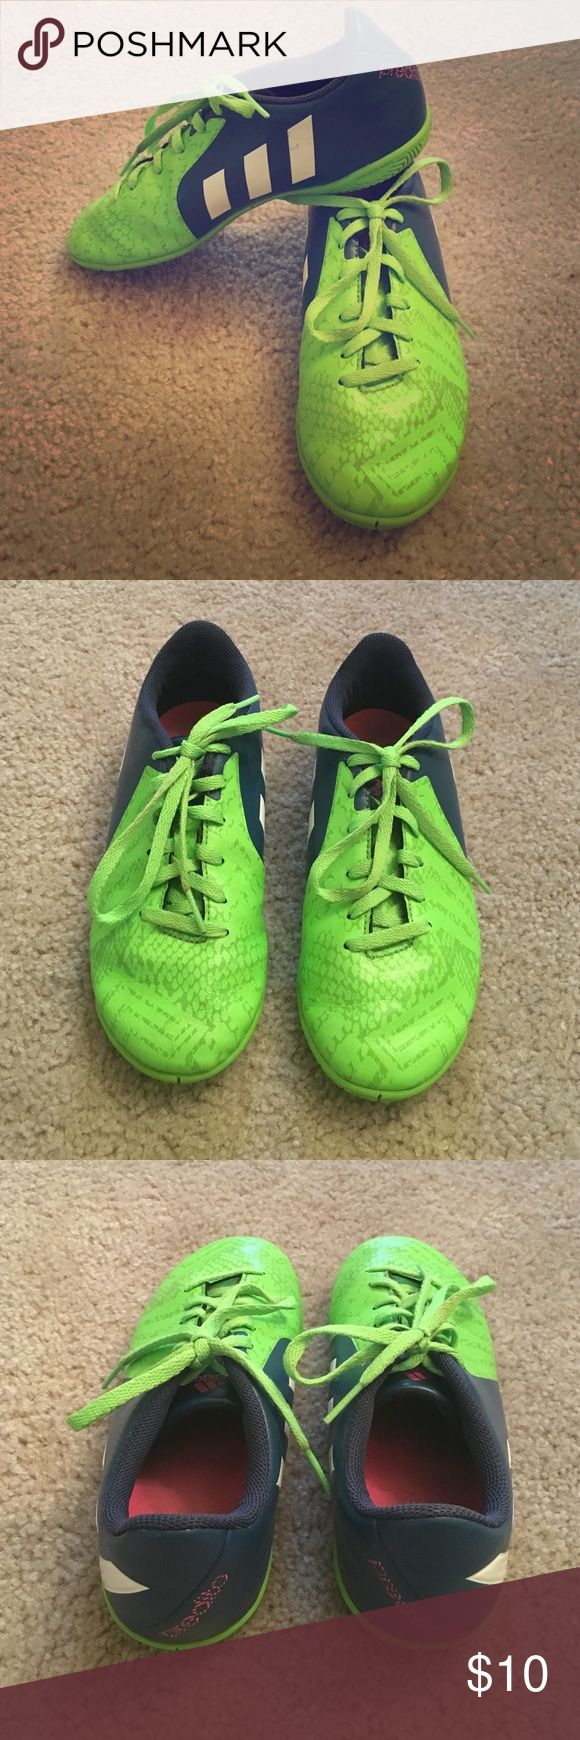 Girls Indoor Soccer Shoes Girls Adidas Indoor Soccer Shoes. Worn one indoor session. Good condition. Size 3.5. adidas Shoes